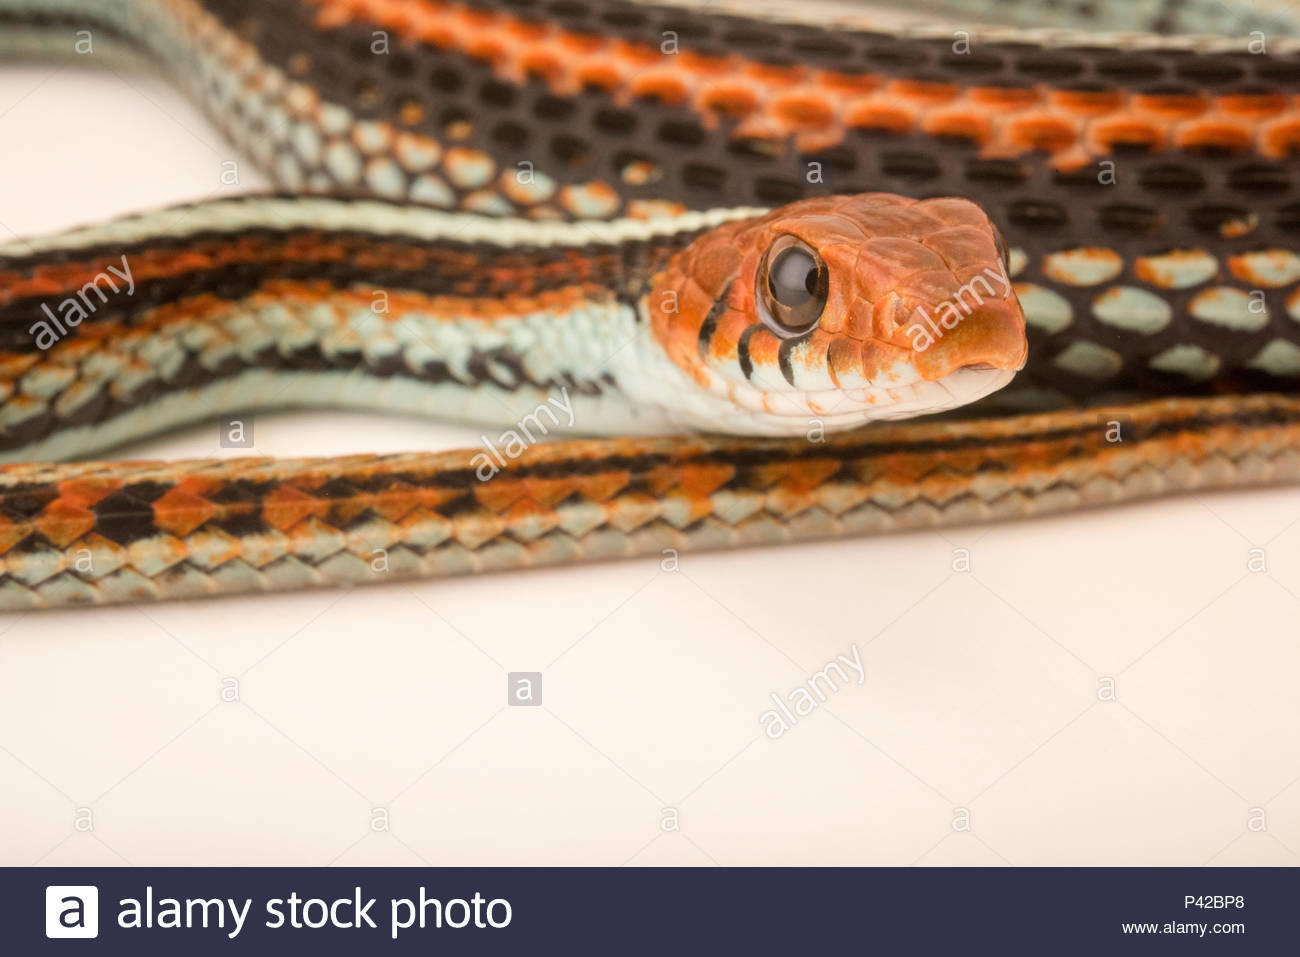 San Francisco garter snake, Thamnophis sirtalis tetrataenia, at the Exmoor Zoo. - Stock Image